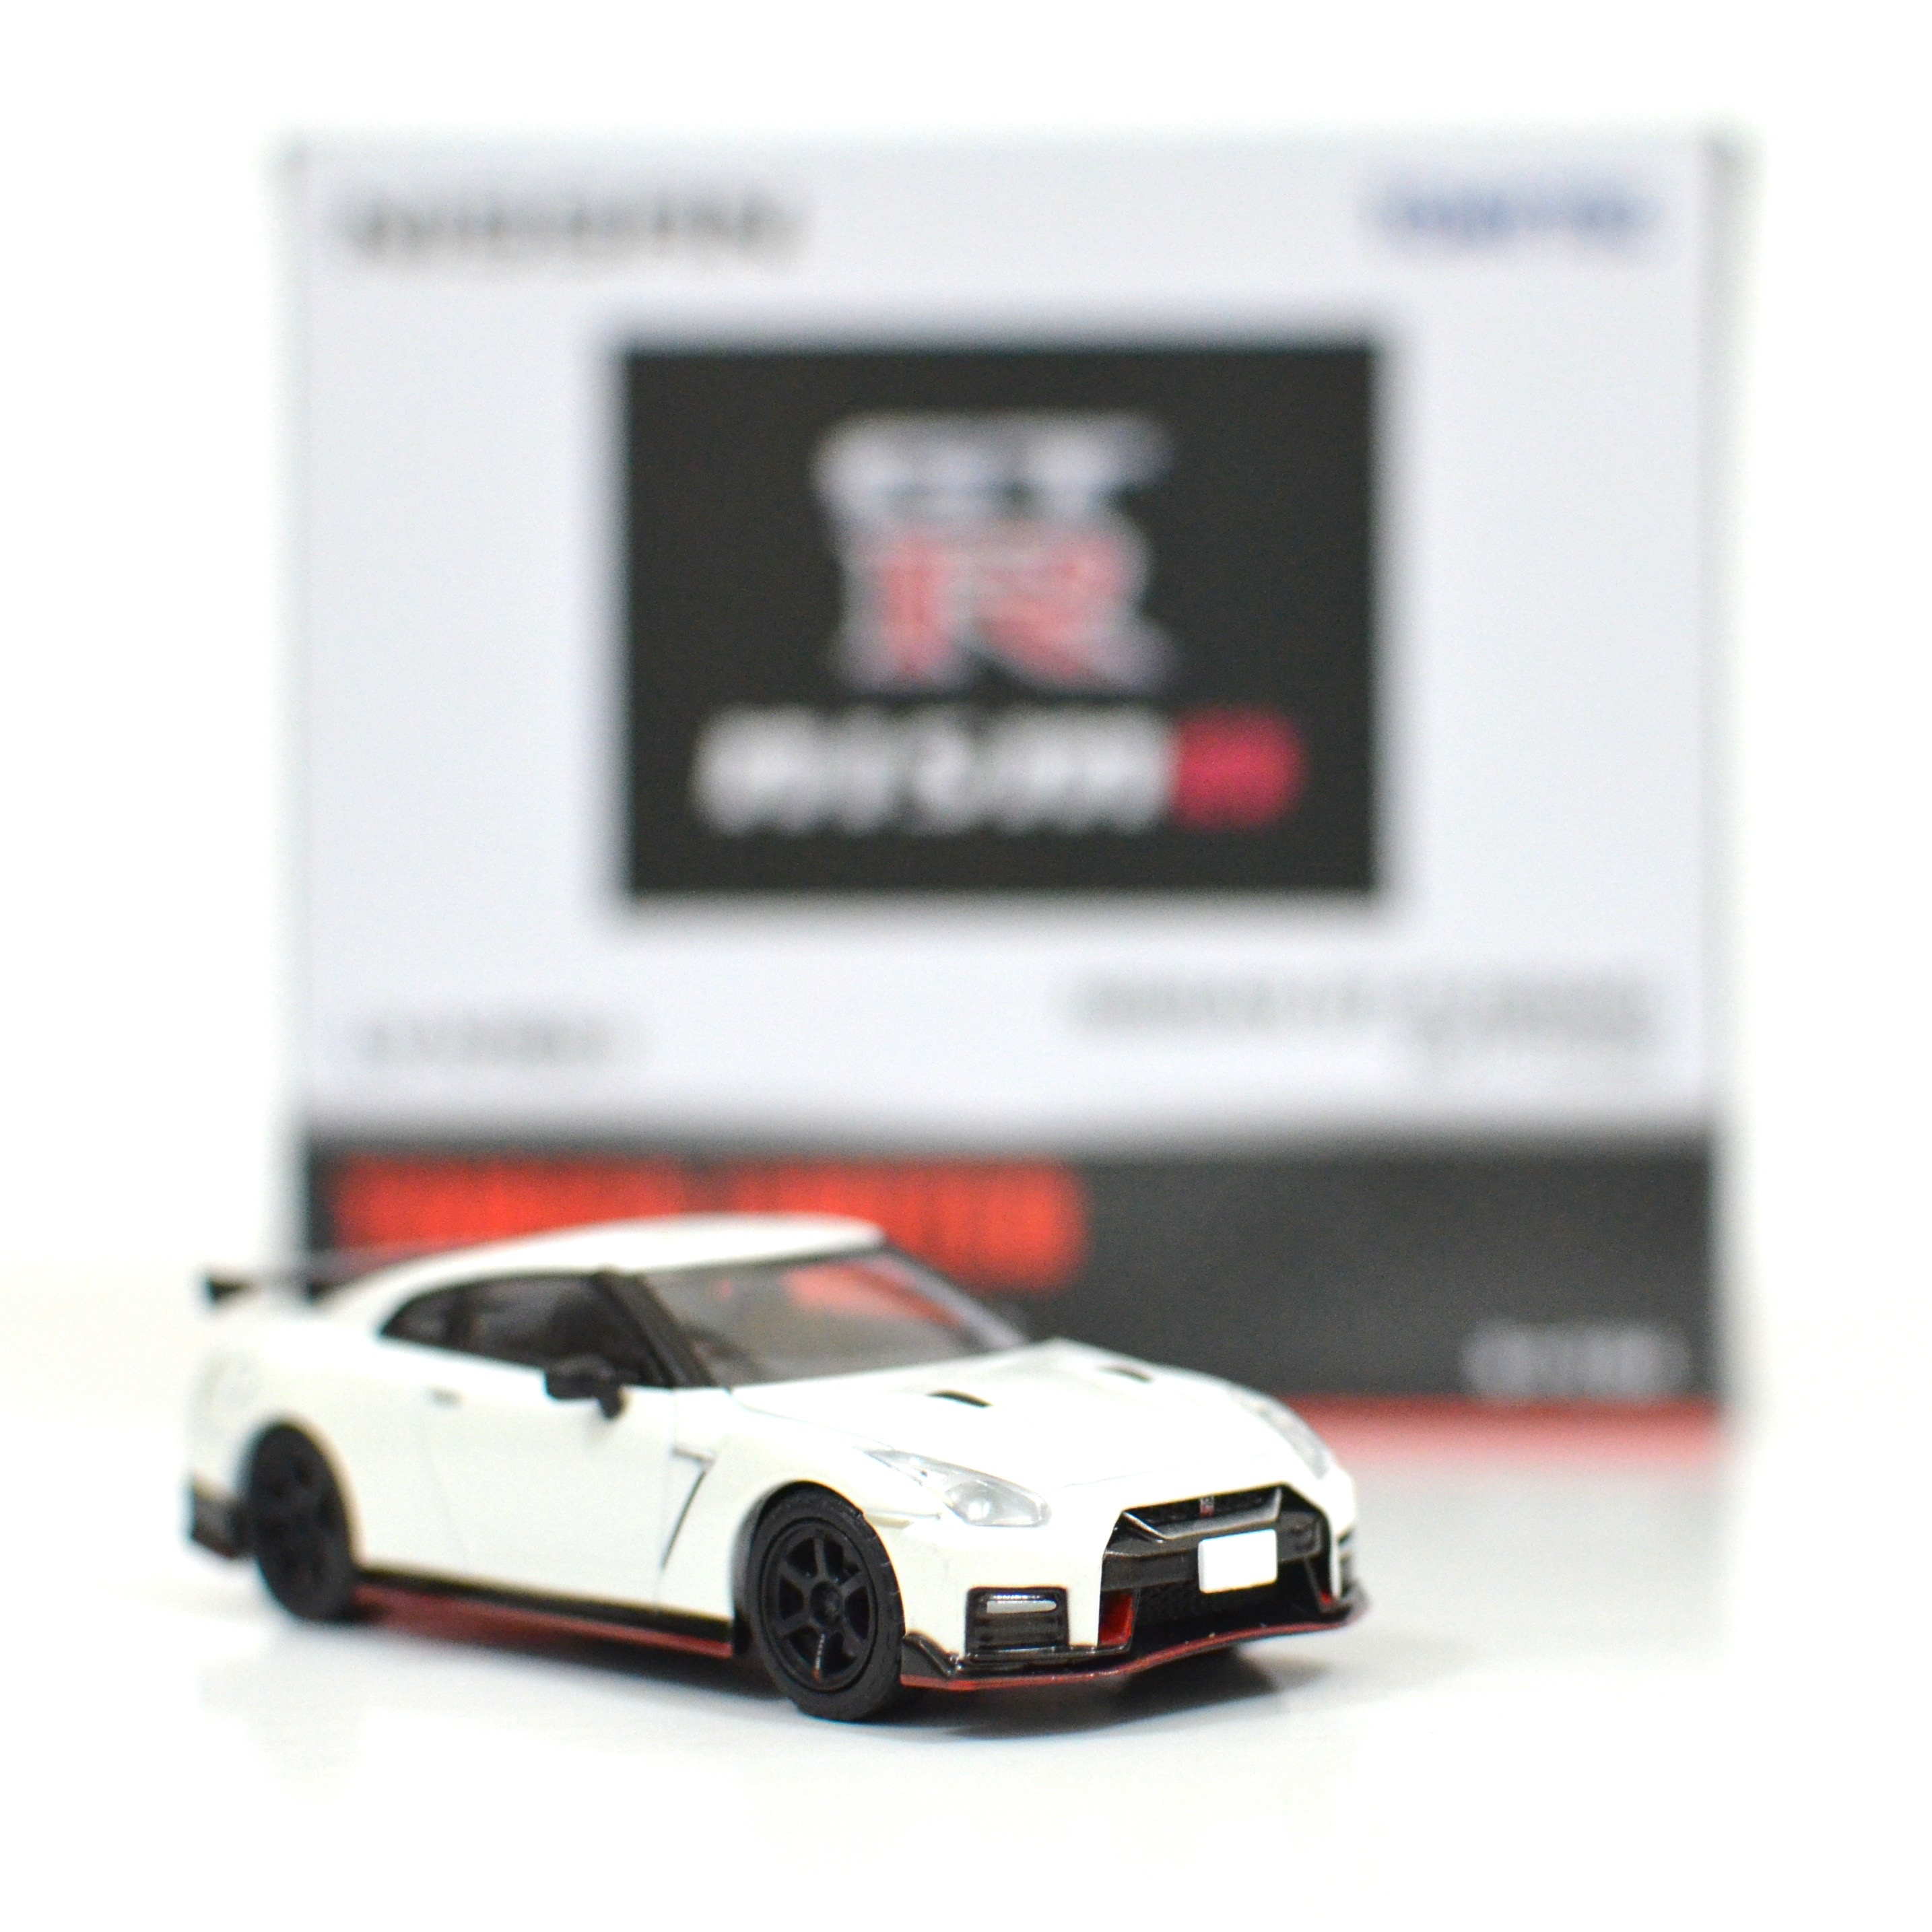 Tomica Cool Drive Tcd01 Nissan Gtr Silver Daftar Harga Terkini dan Source · tomica limited vintage